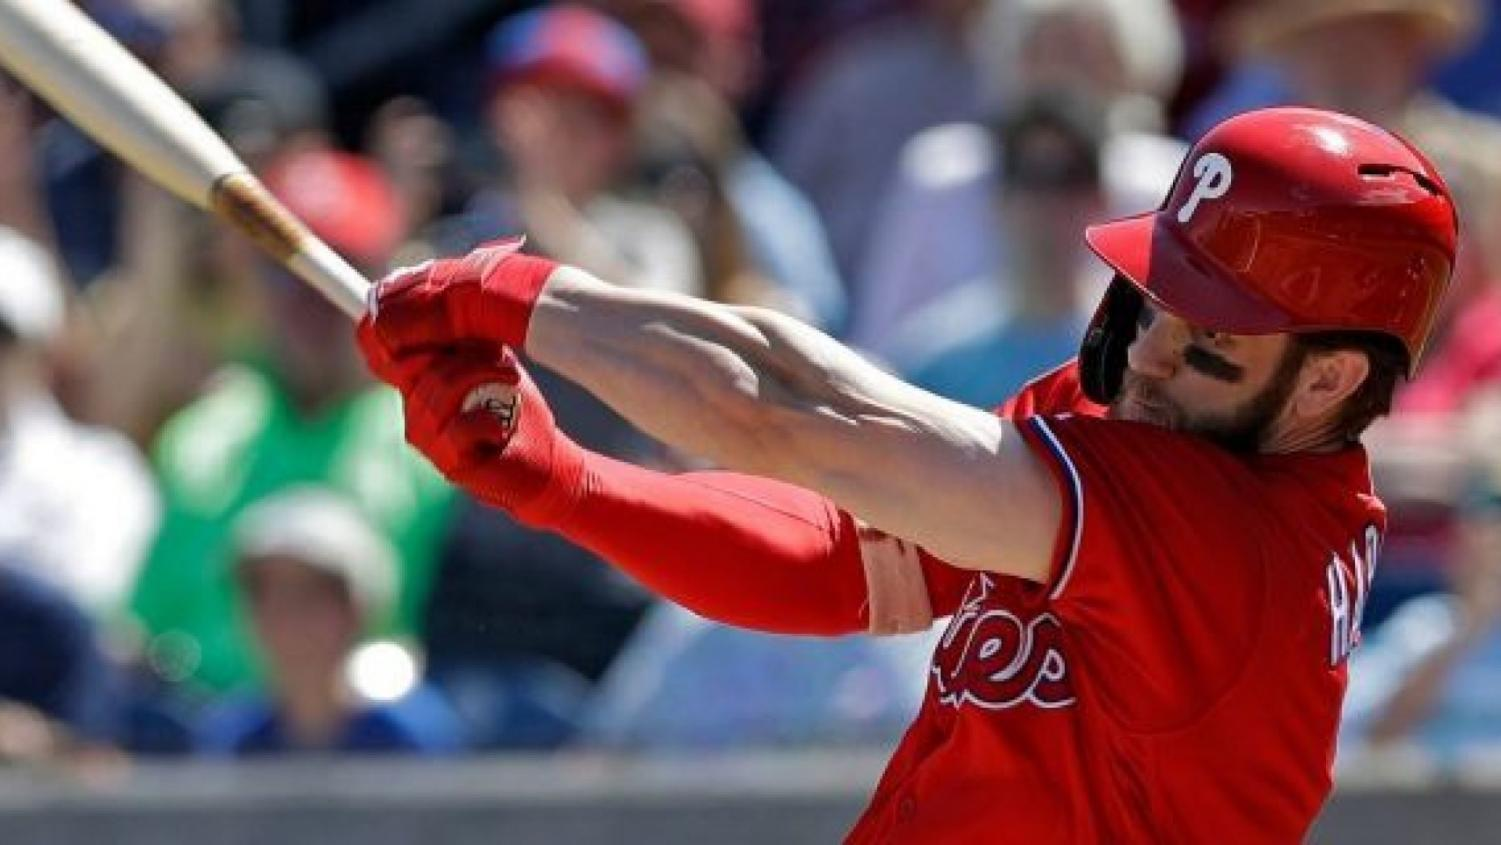 Bryce Harper makes his first official hit as a player on the Philadelphia Phillies after spring training.